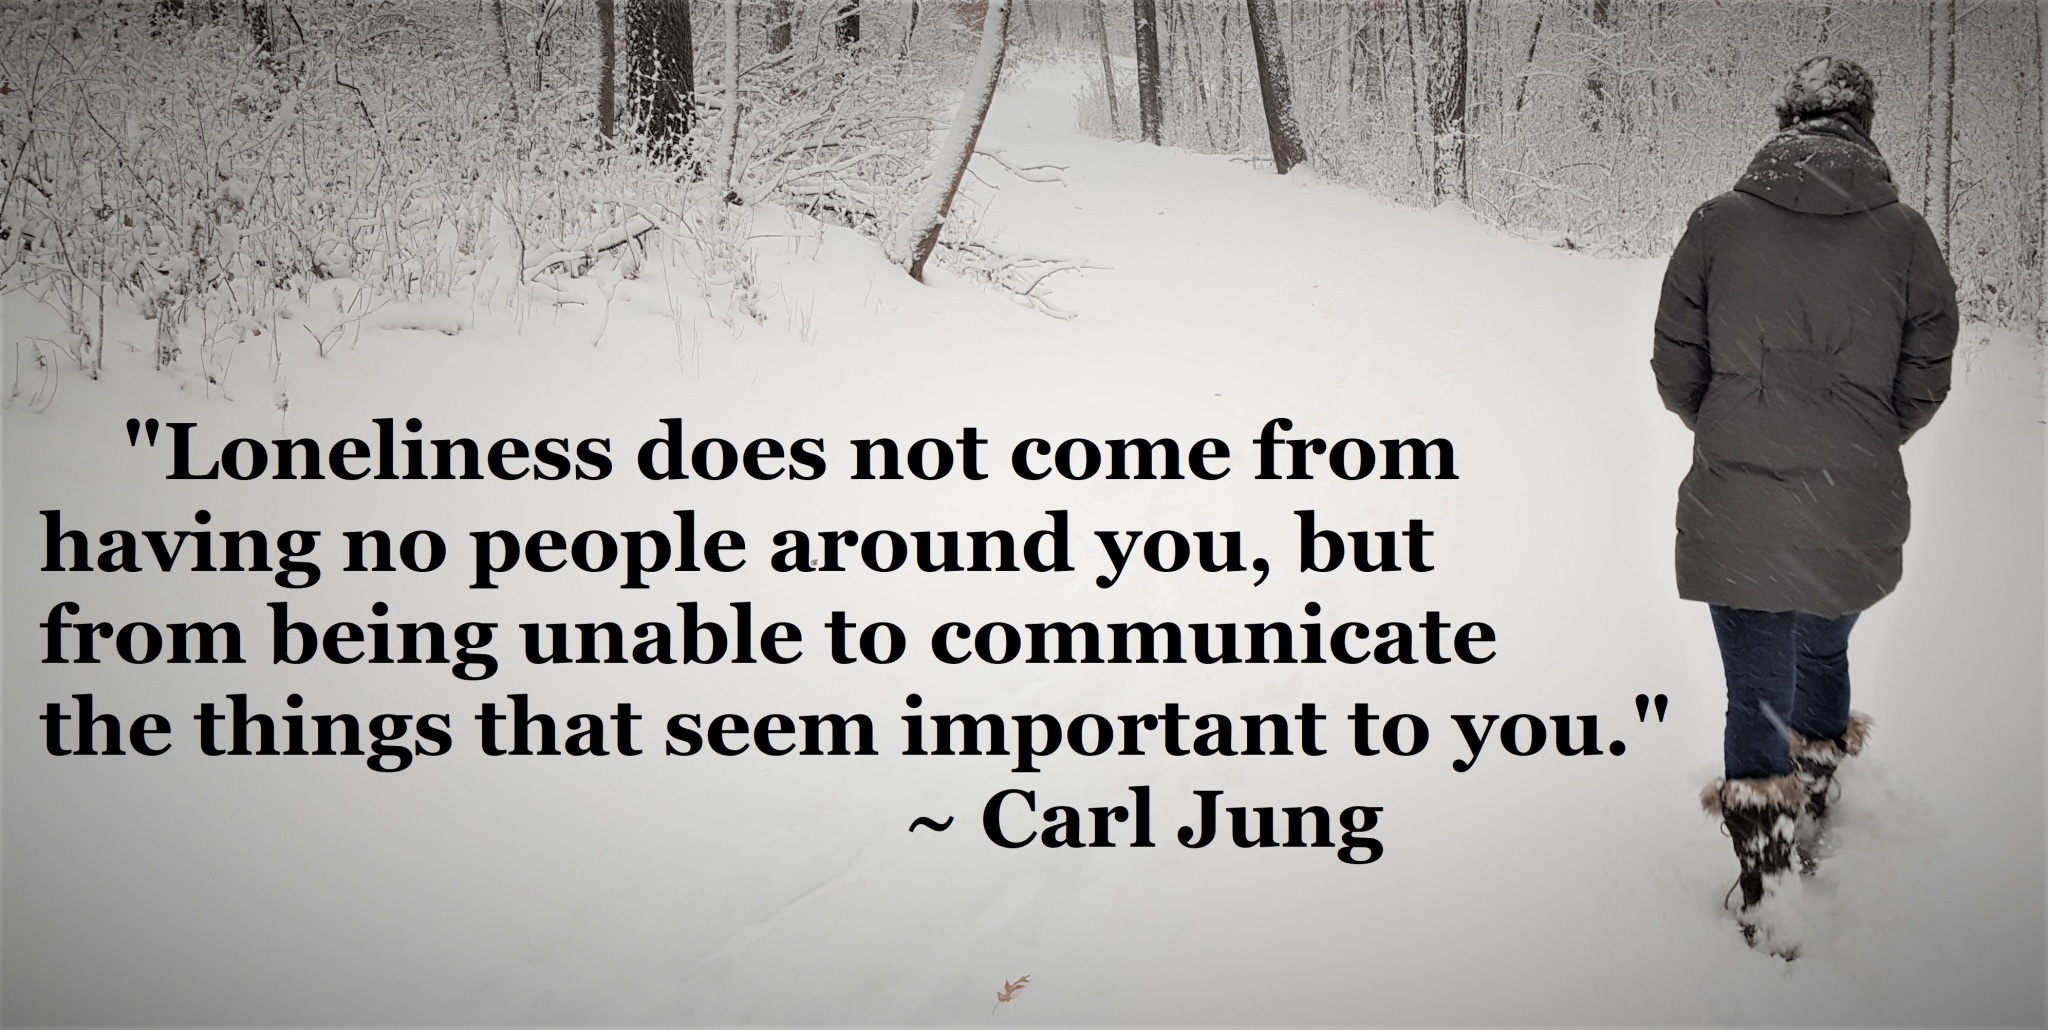 000 - Carl Jung - loneliness is being unable to say your important stuff